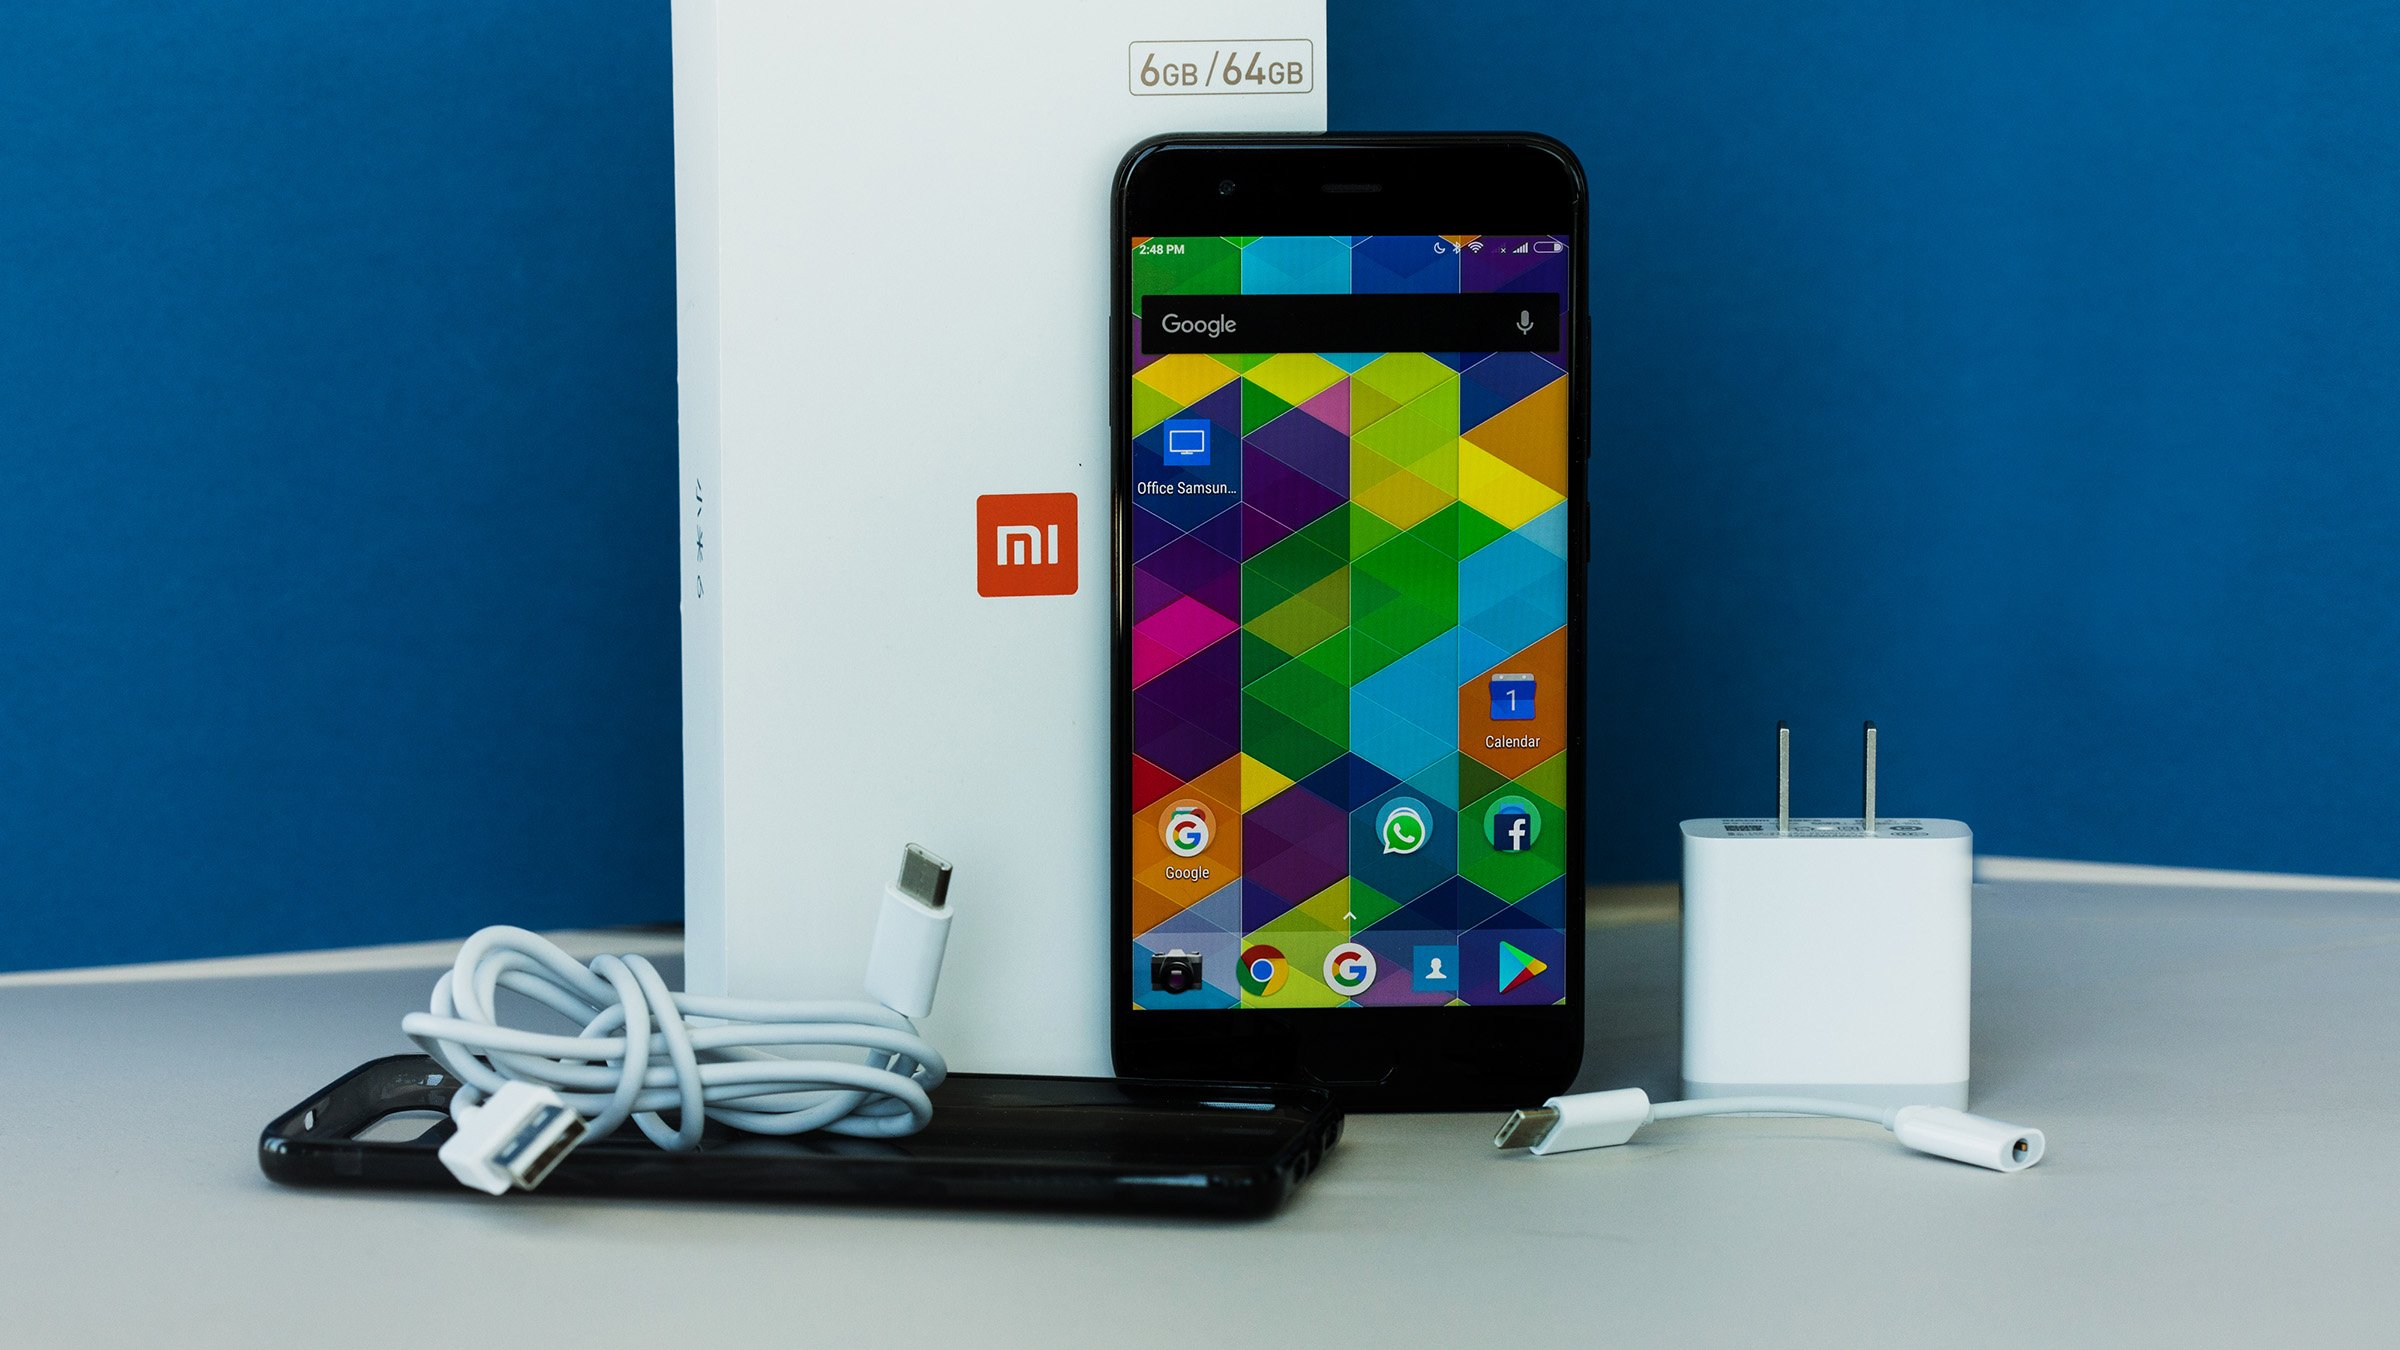 Xiaomi mi 6 review definitely worth importing hardware reviews xiaomi mi 6 review definitely worth importing hardware reviews androidpit stopboris Image collections